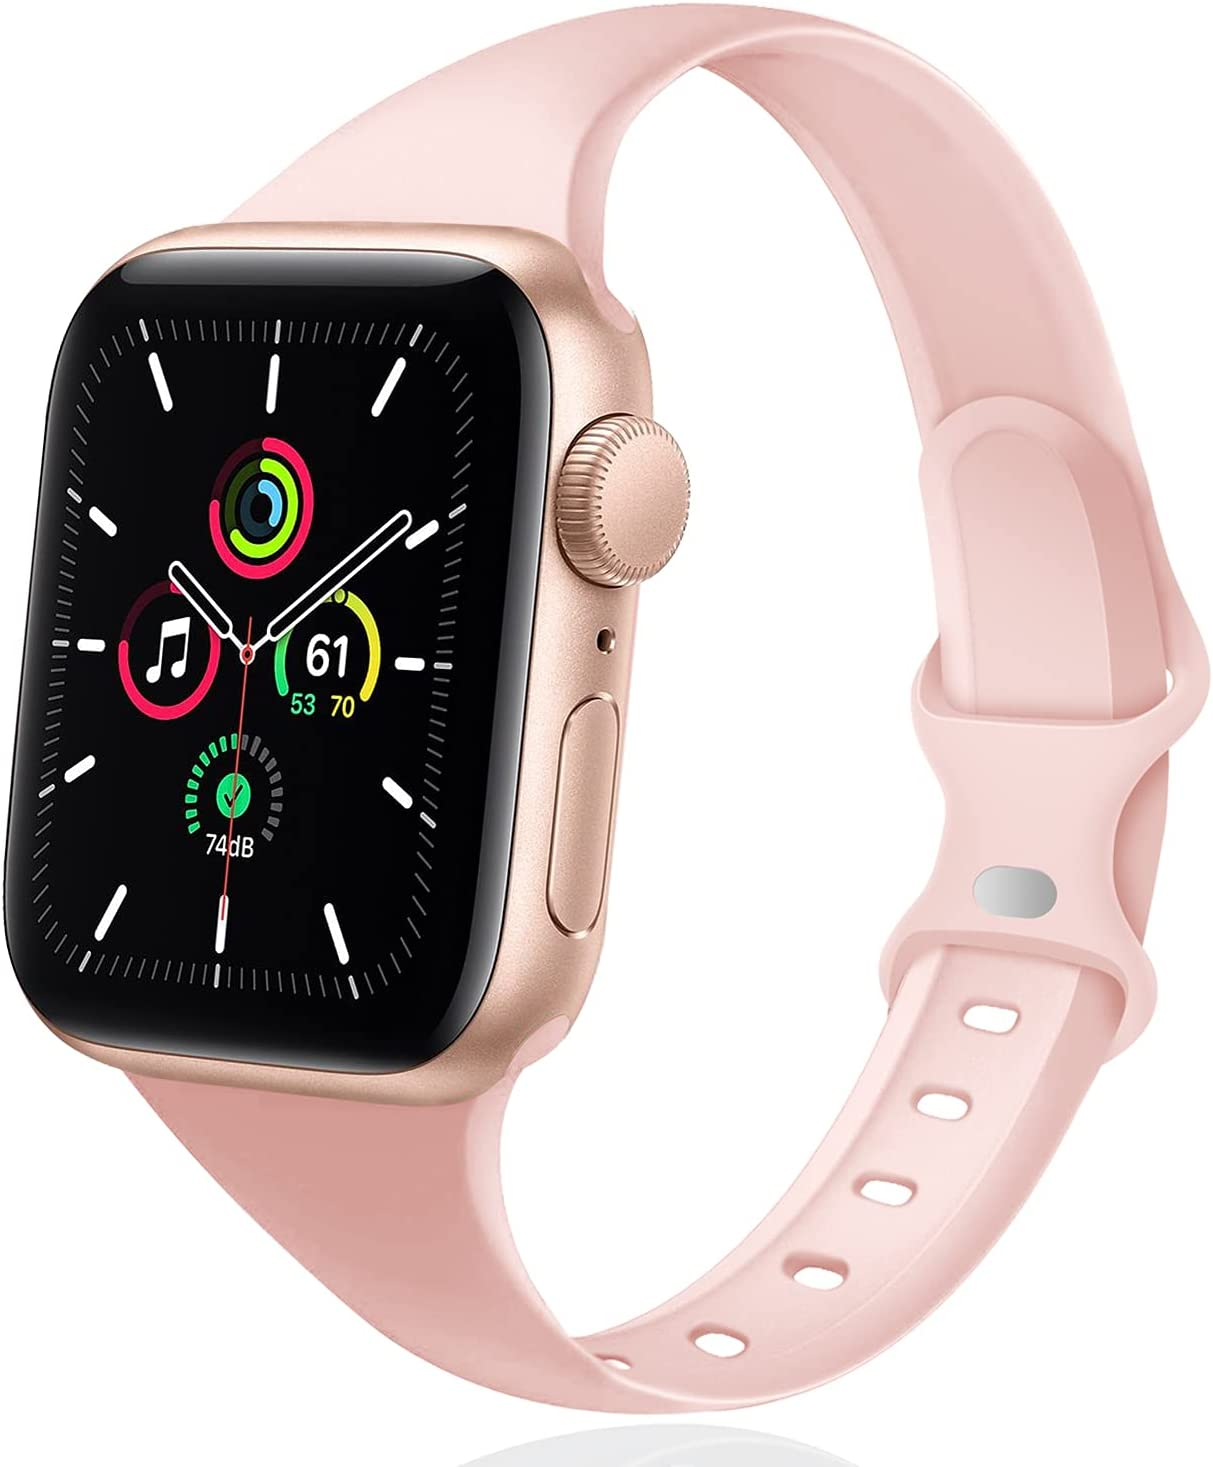 DYKEISS Sport Slim Silicone Band Compatible for Apple Watch Band 38mm 42mm 40mm 44mm, Thin Soft Narrow Replacement Strap Wristband for iWatch Series 5/4/3/2/1 Women & Men (Sand Pink, 42mm/44mm)